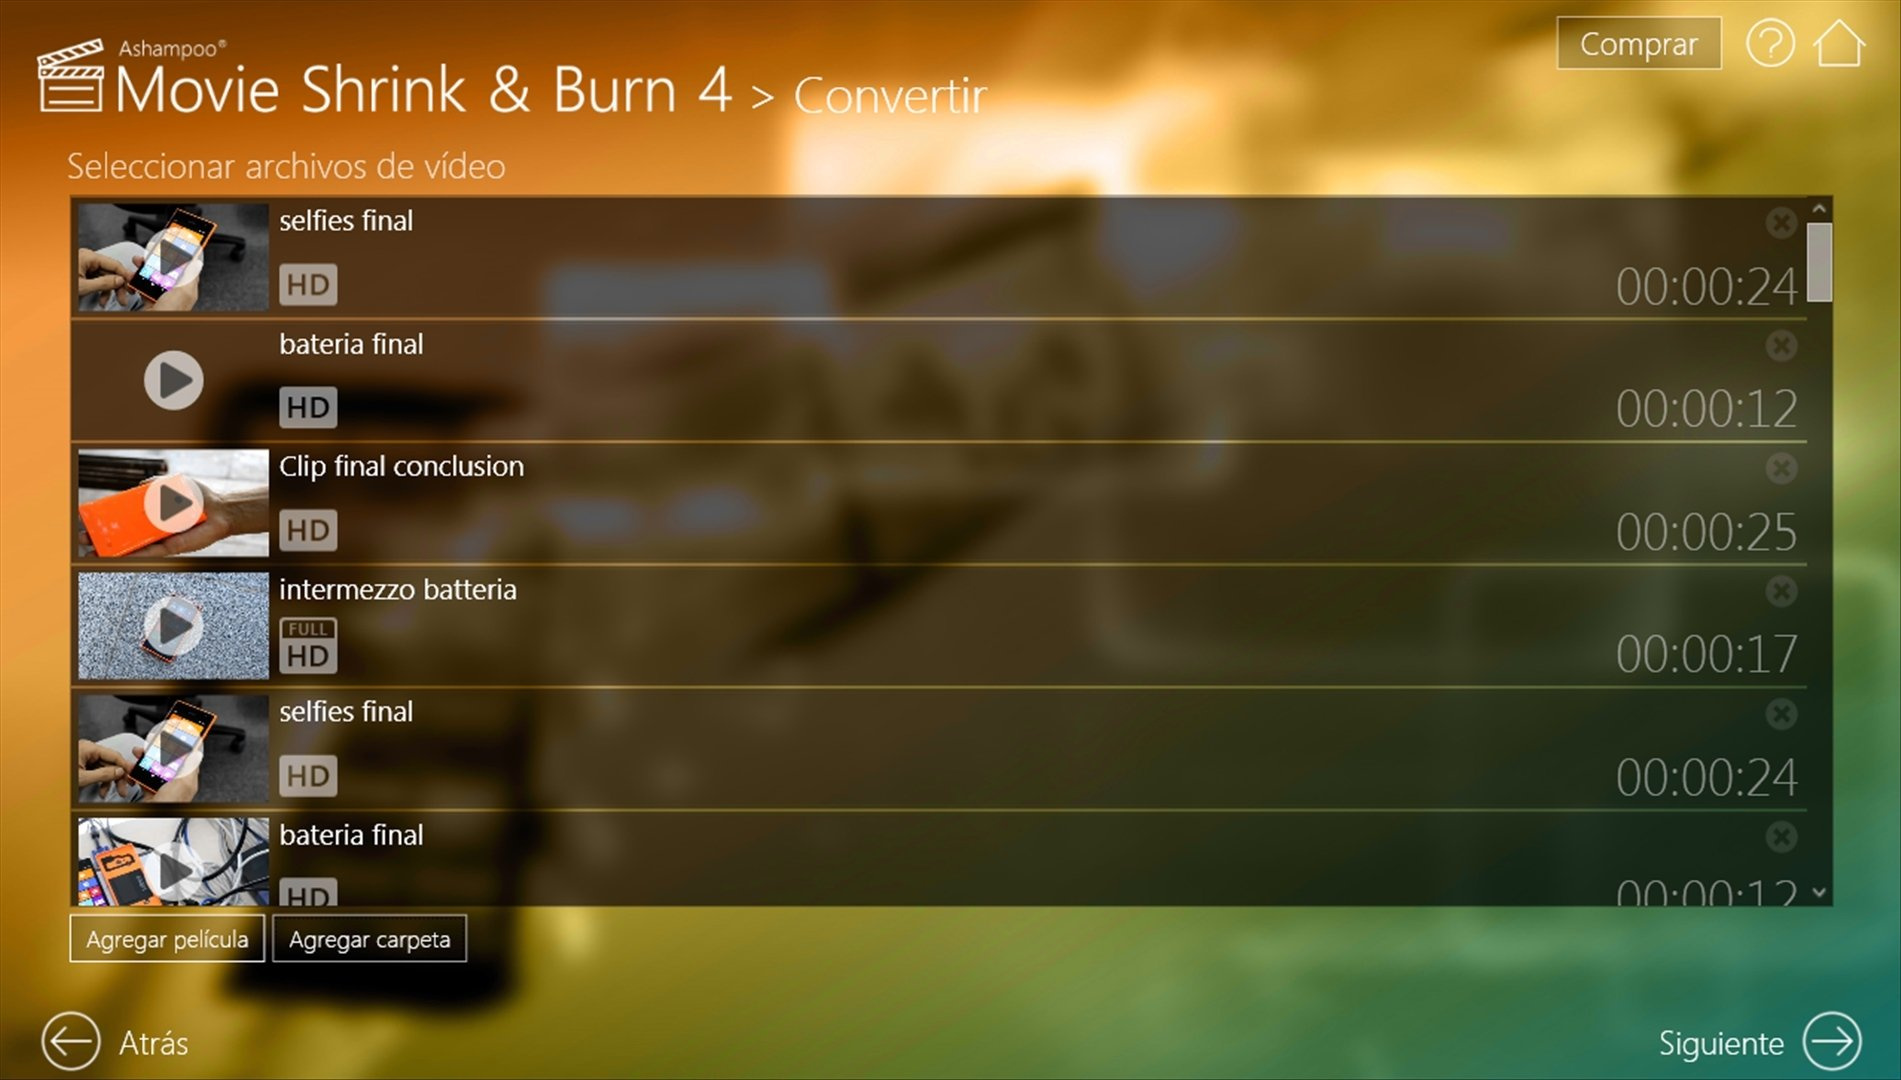 Ashampoo movie shrink & burn 4. 0. 2 download for pc free.